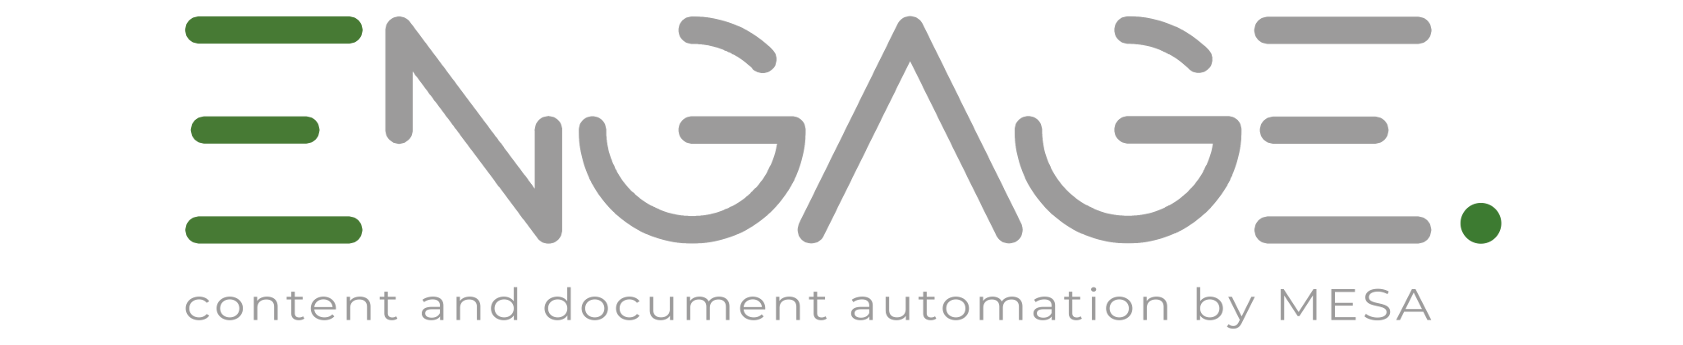 ENGAGE - Content & document automation by MESA